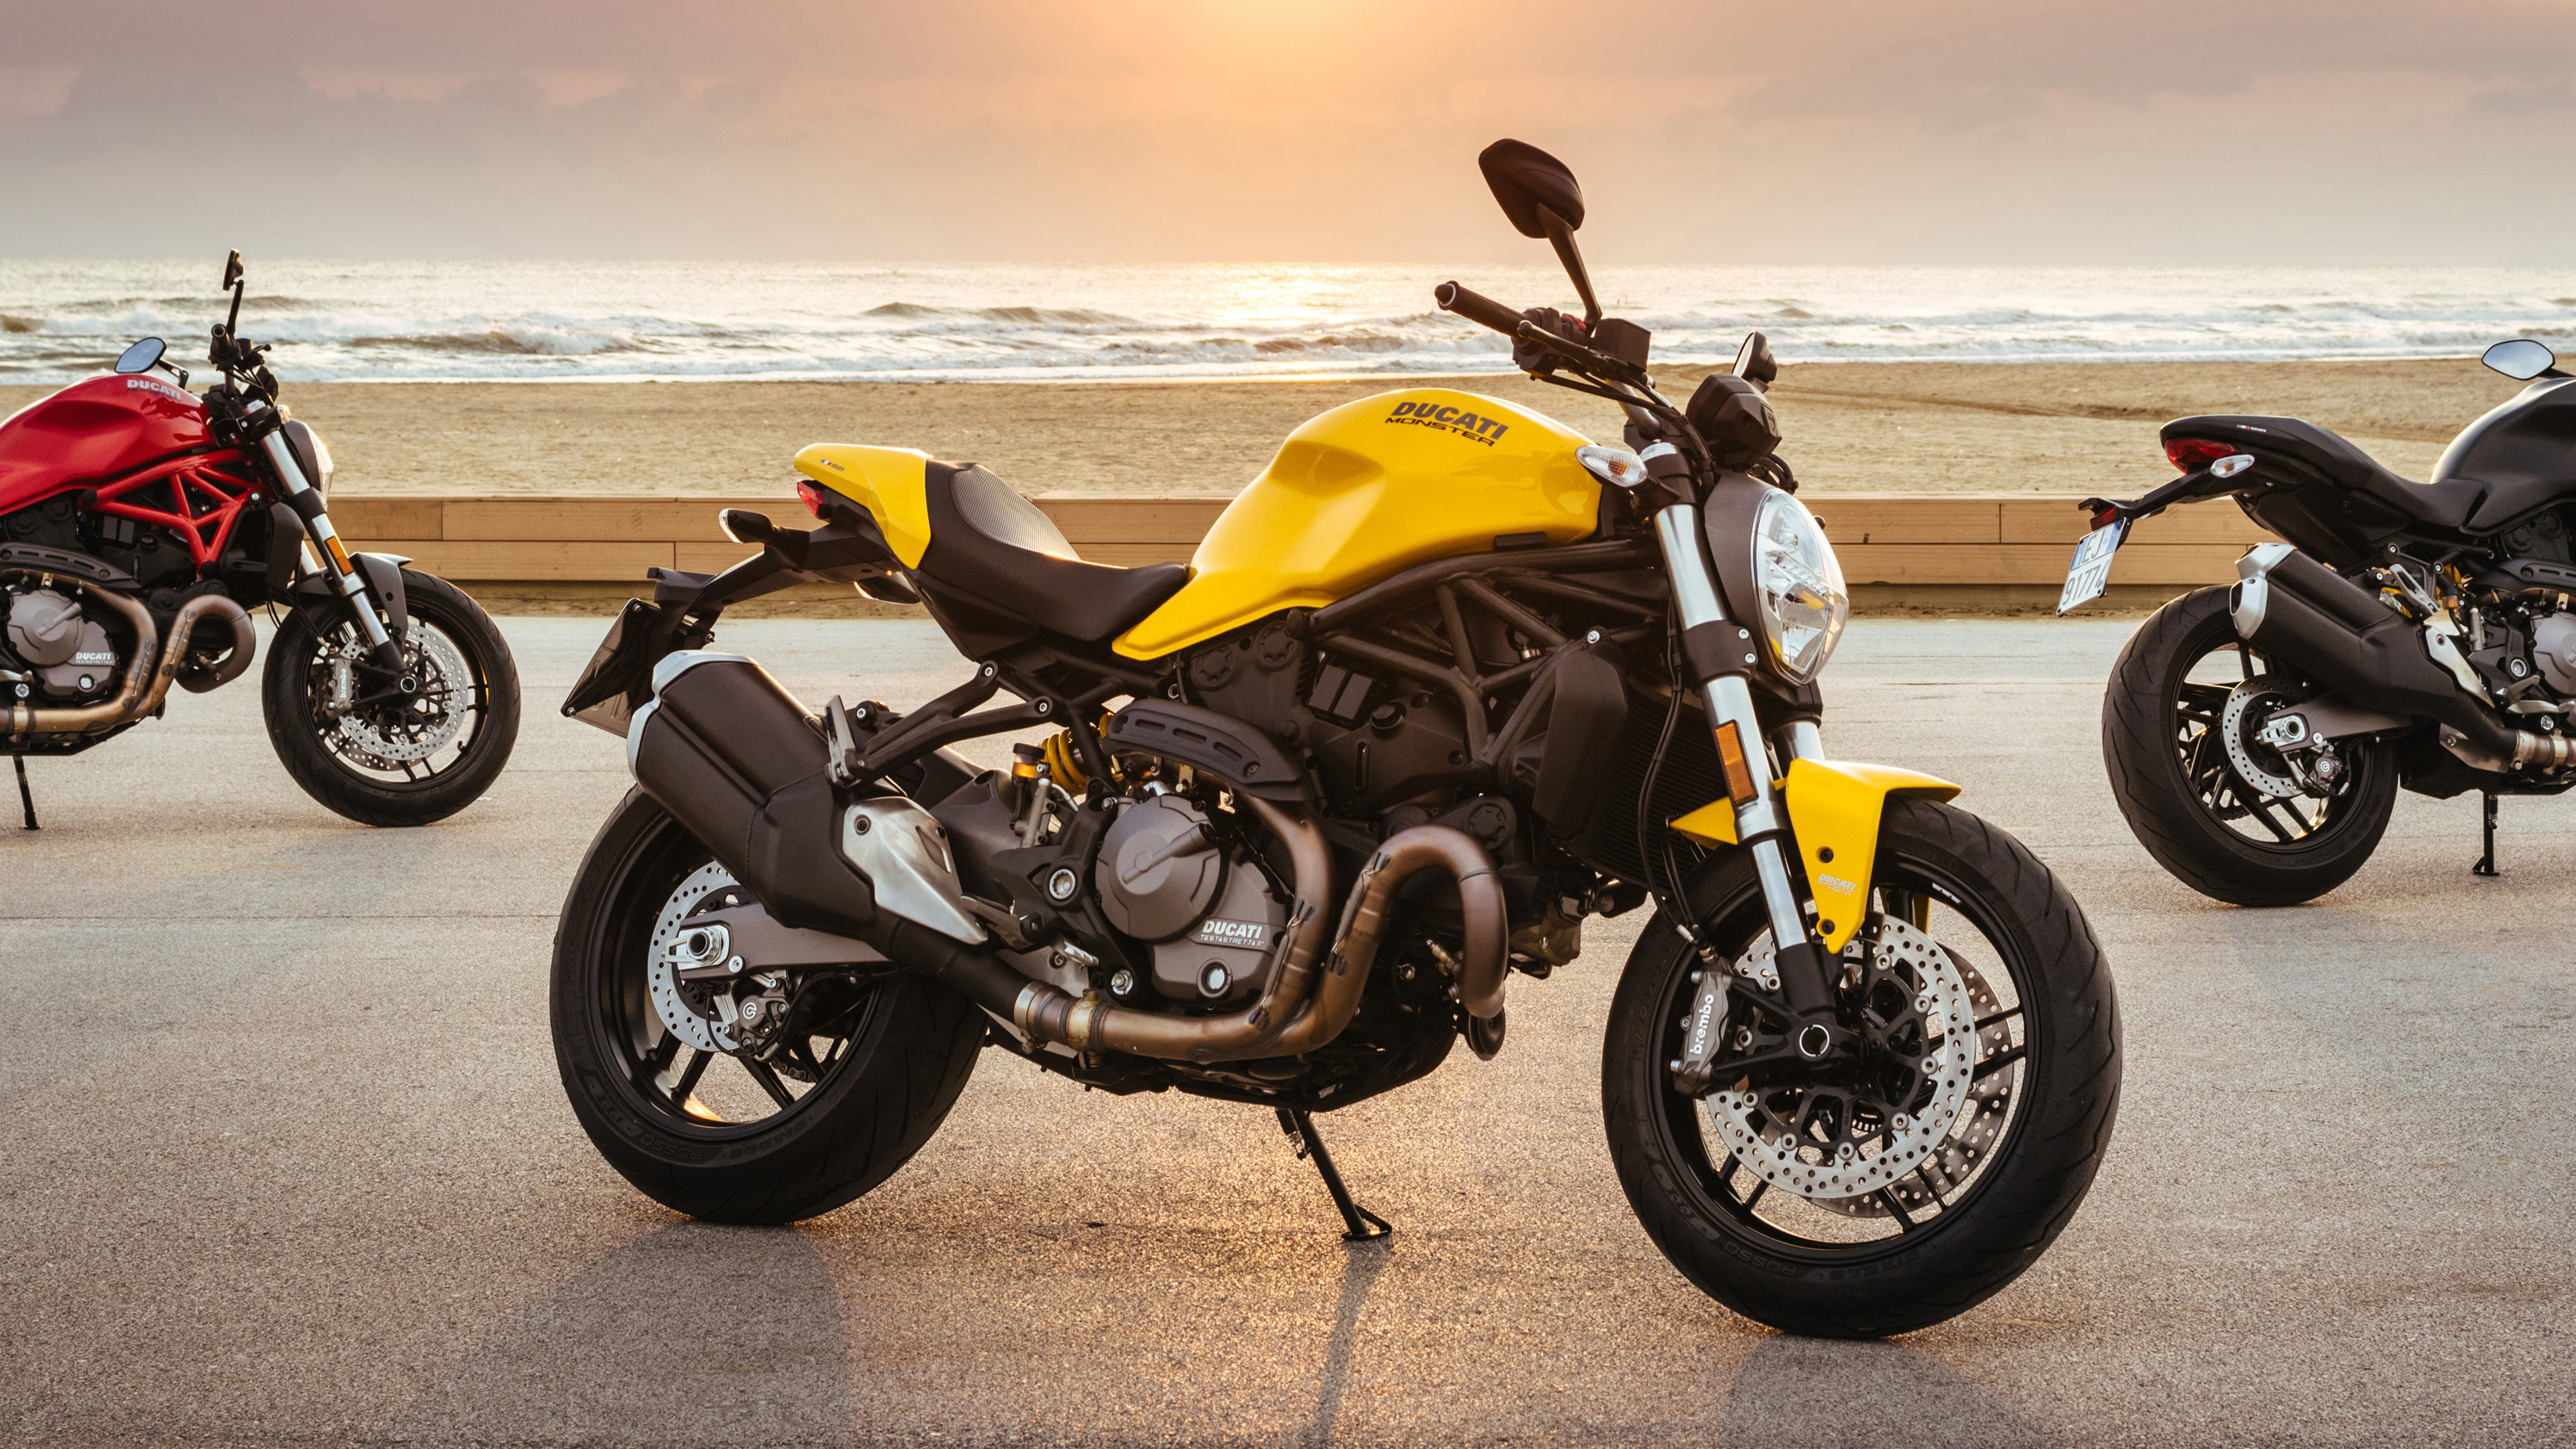 2019 Ducati Monster 821 Pictures, Photos